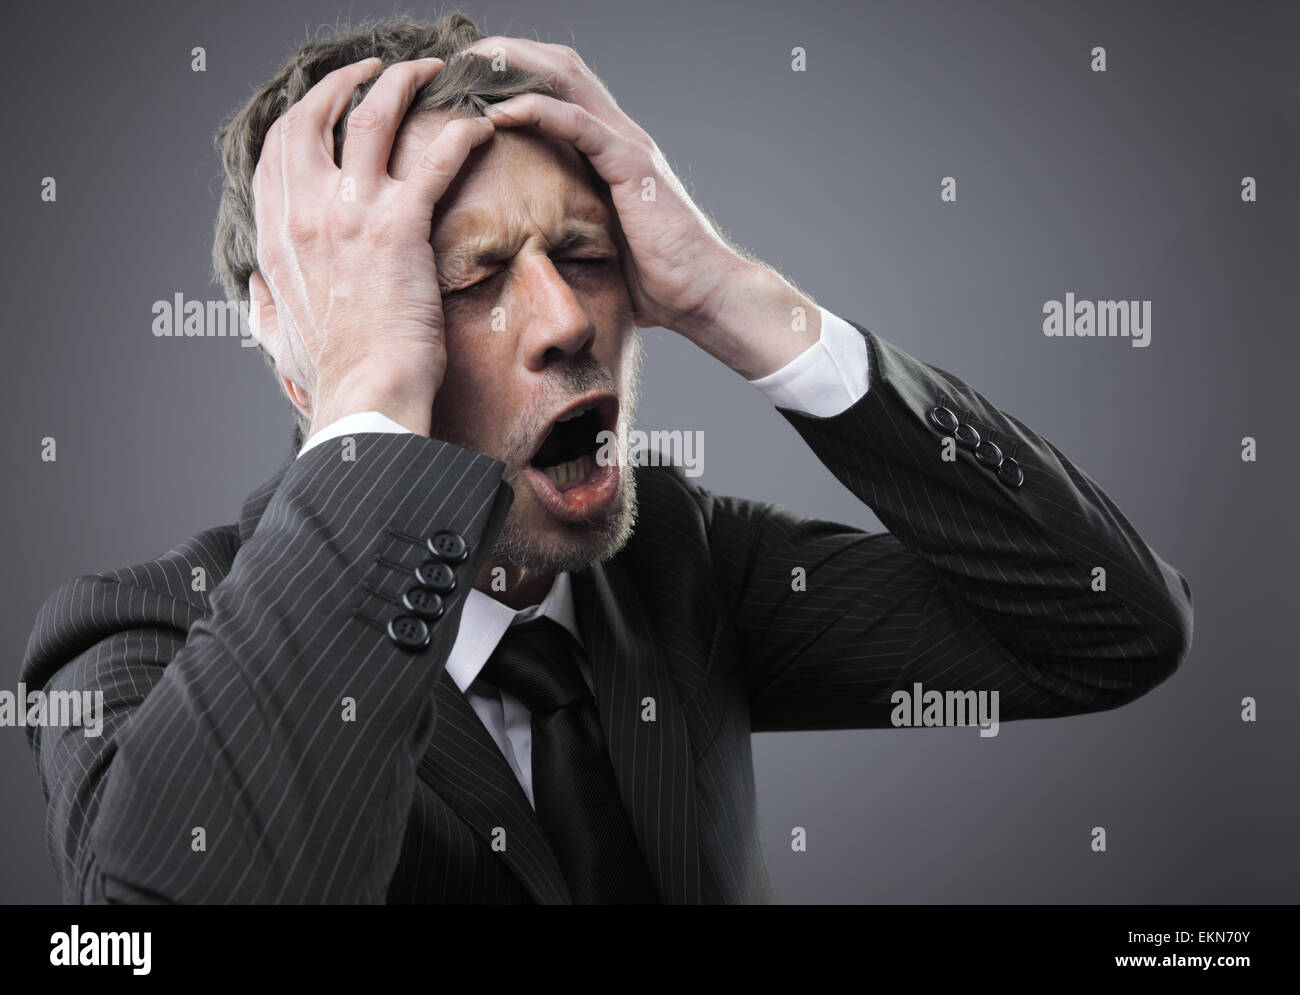 Pain - Stock Image